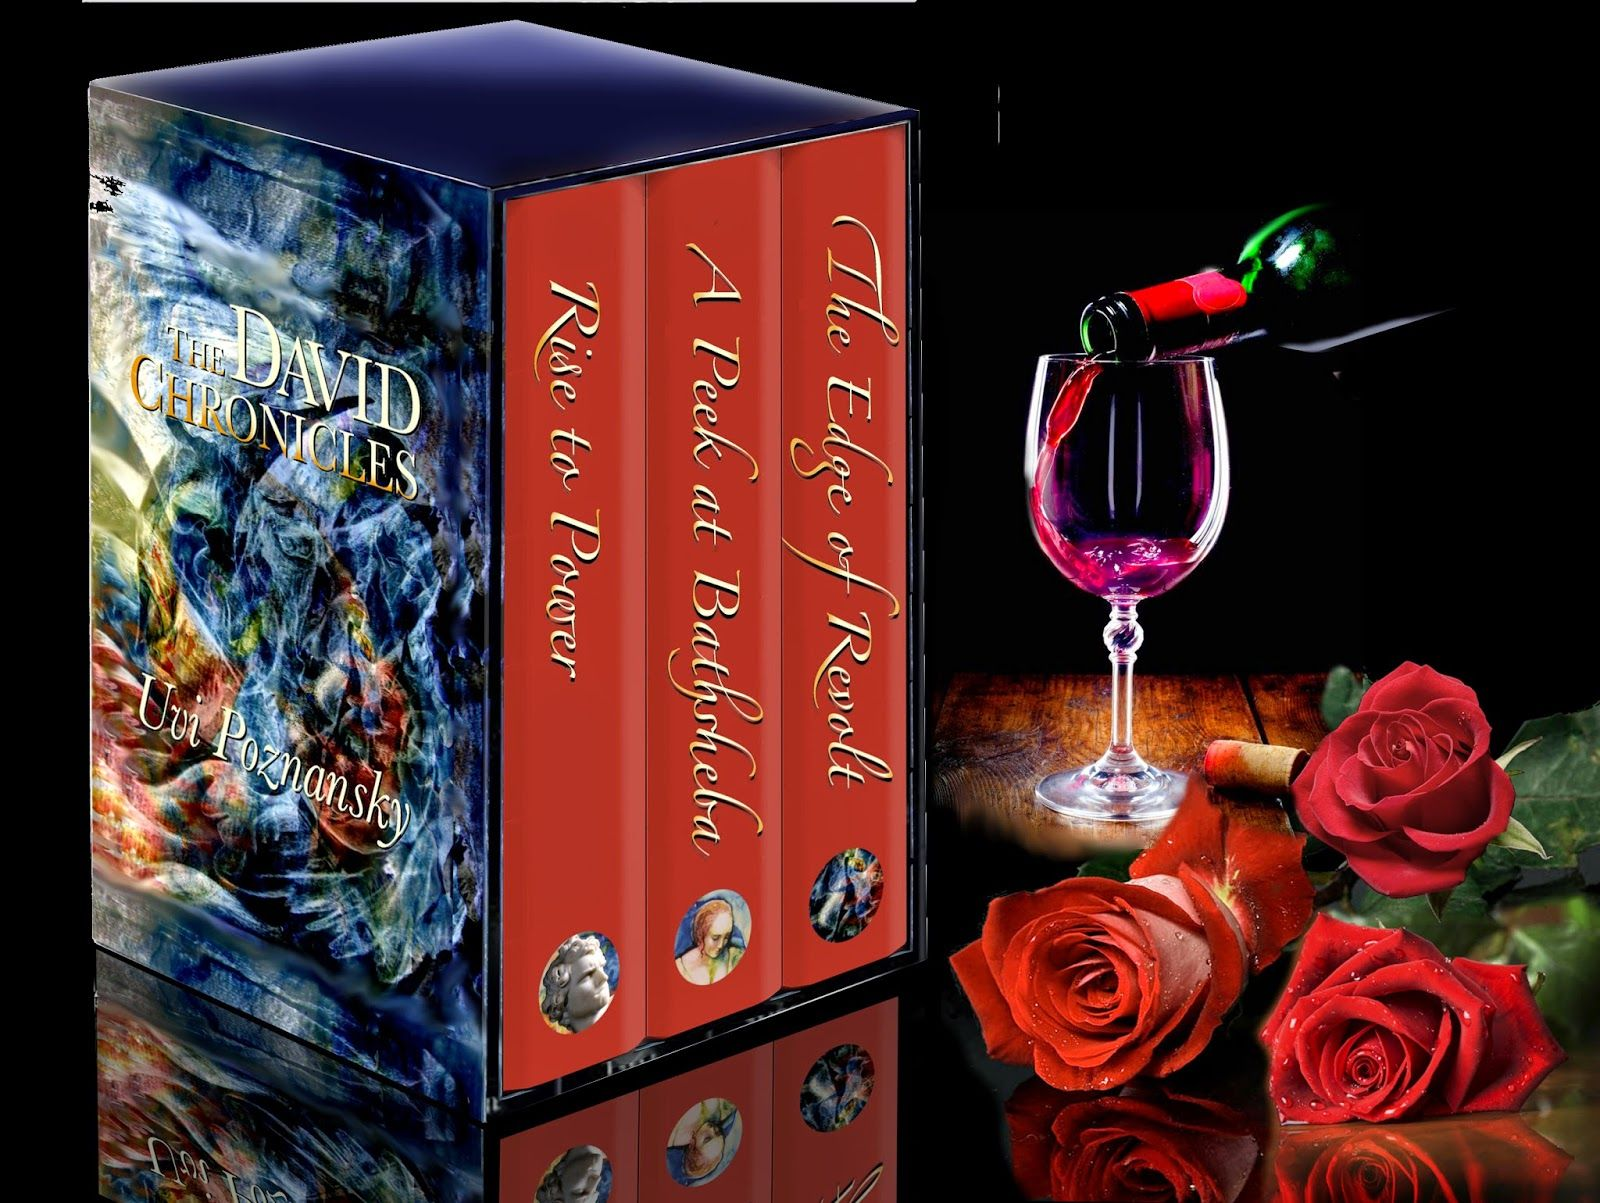 Uvi Poznansky A Portrait Of Our Love Rippling There Across The Surface Of The Wine Ripple Our Love Great Books To Read